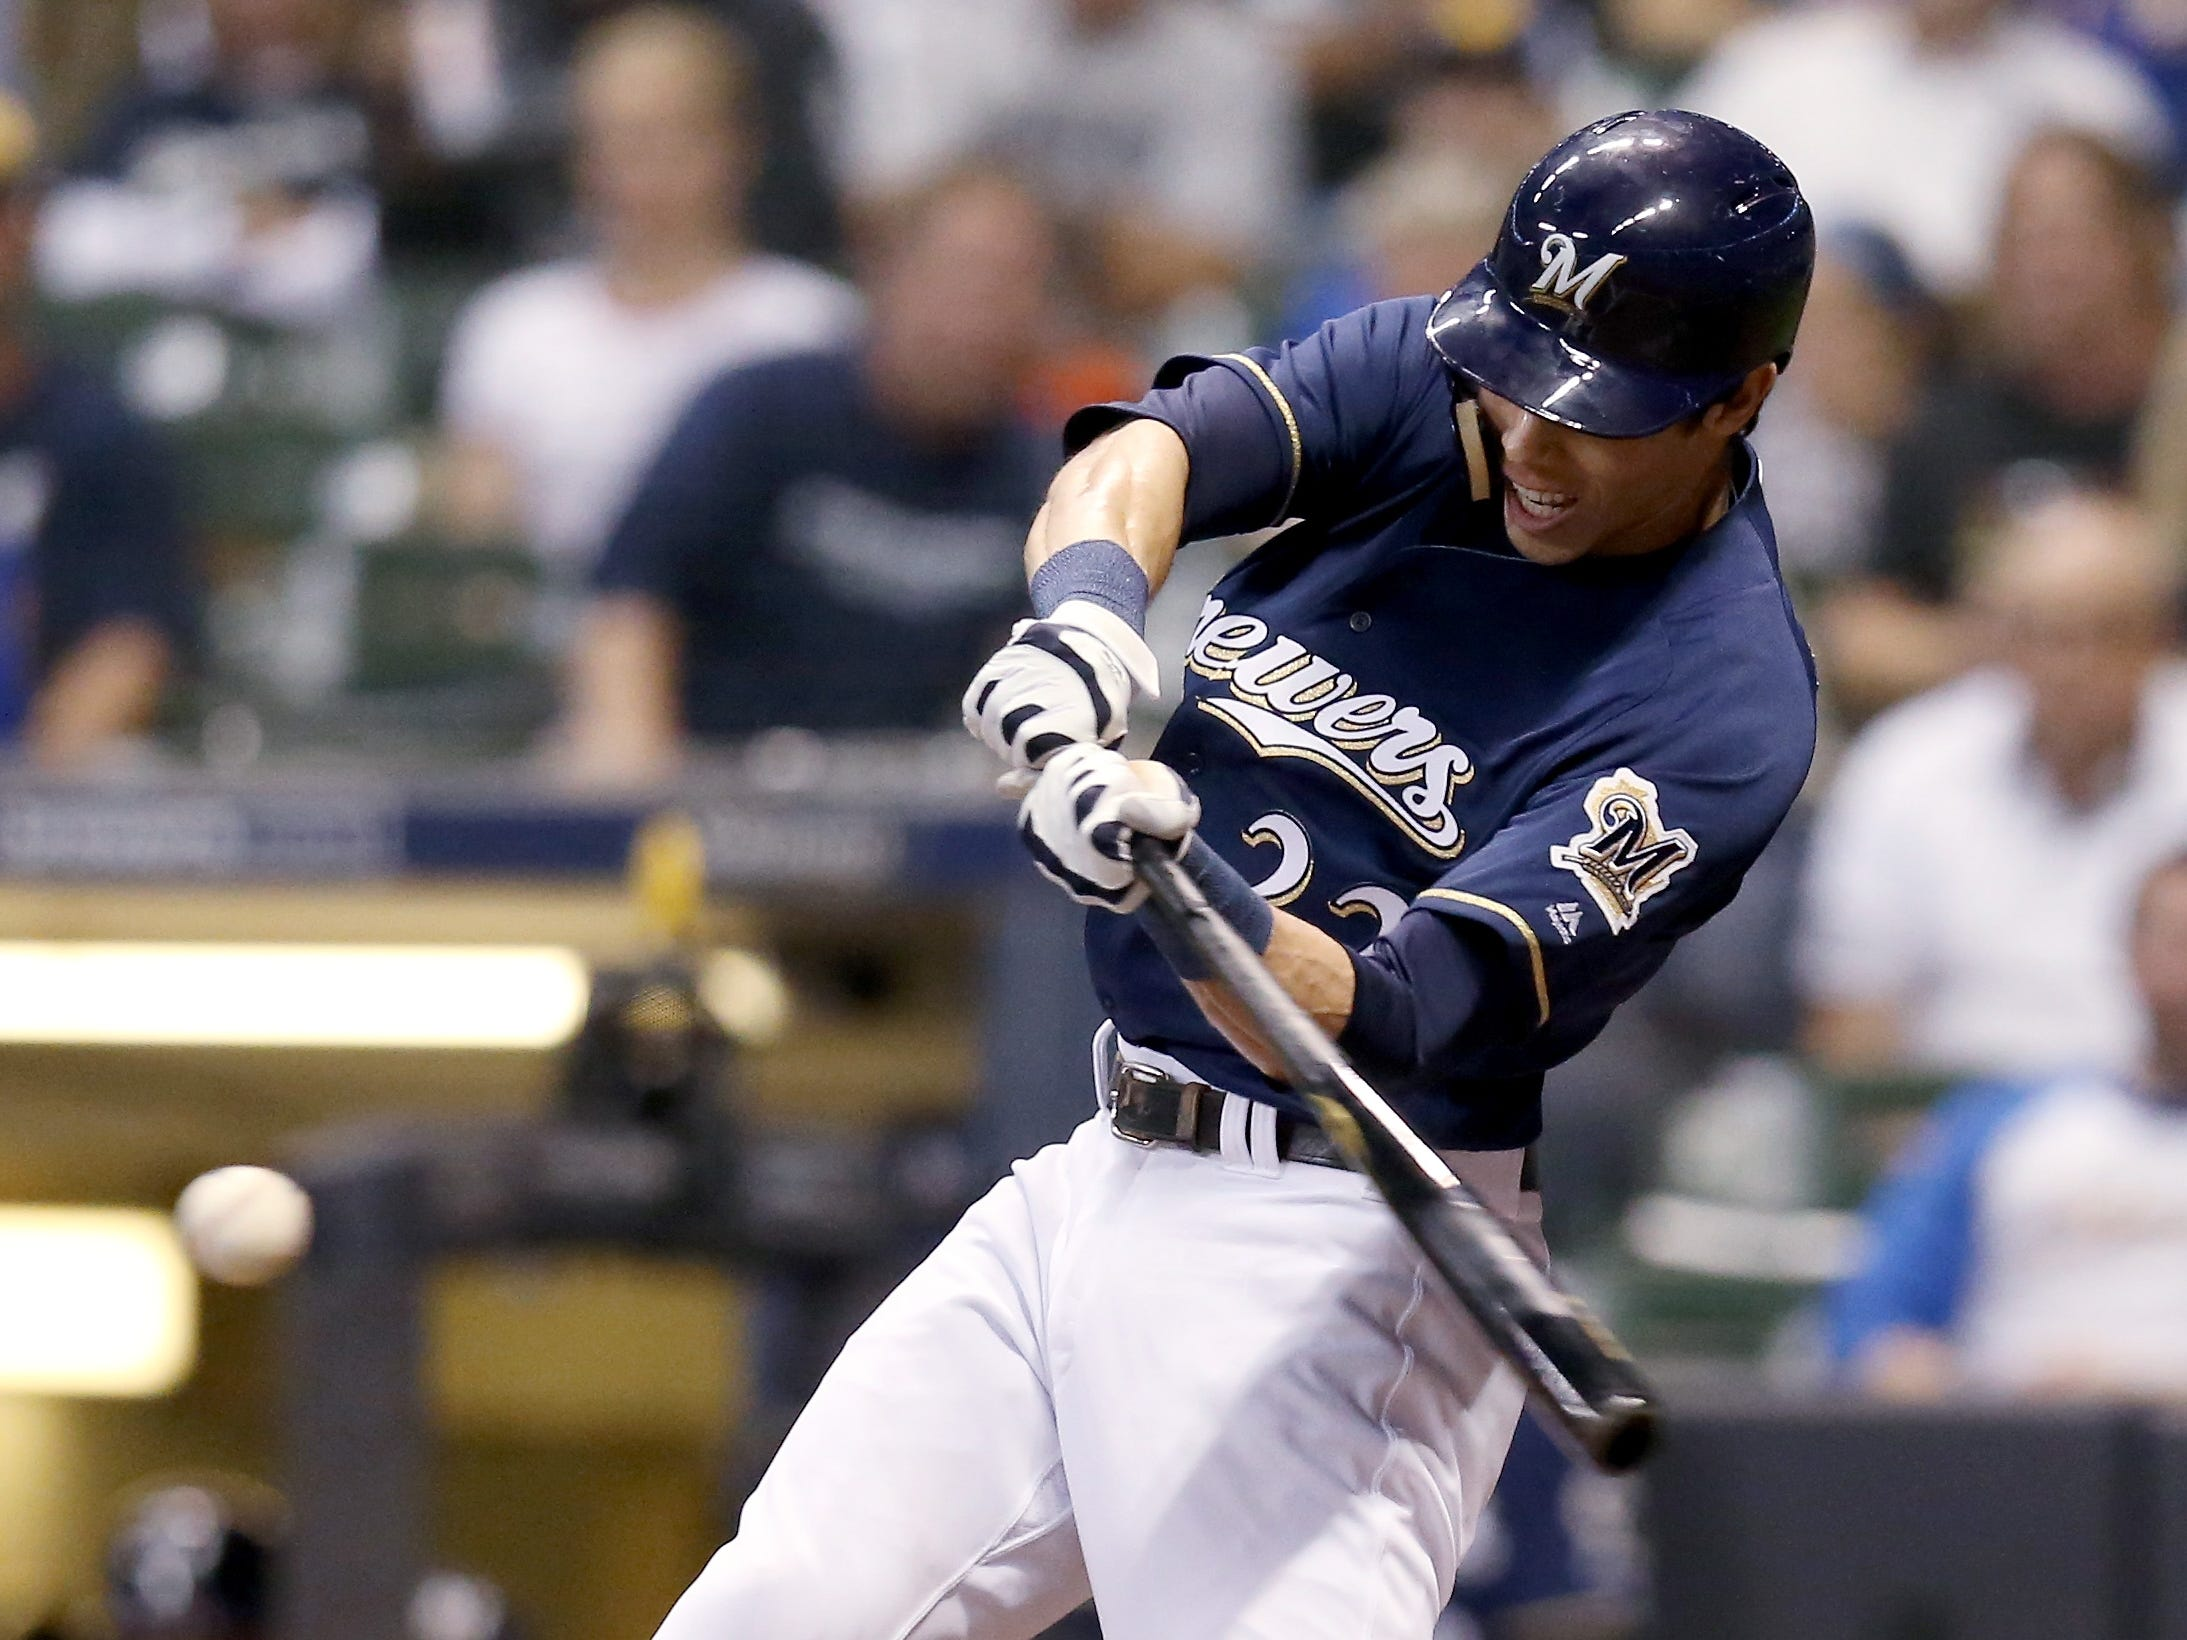 Christian Yelich gets the Brewers' offense going against the Reds in the first inning with a double to the gap in left-center field. Yelich would later advance to third on a passed ball and score on an infield single by Jesus Aguilar to give the Brewers a 1-0 lead.